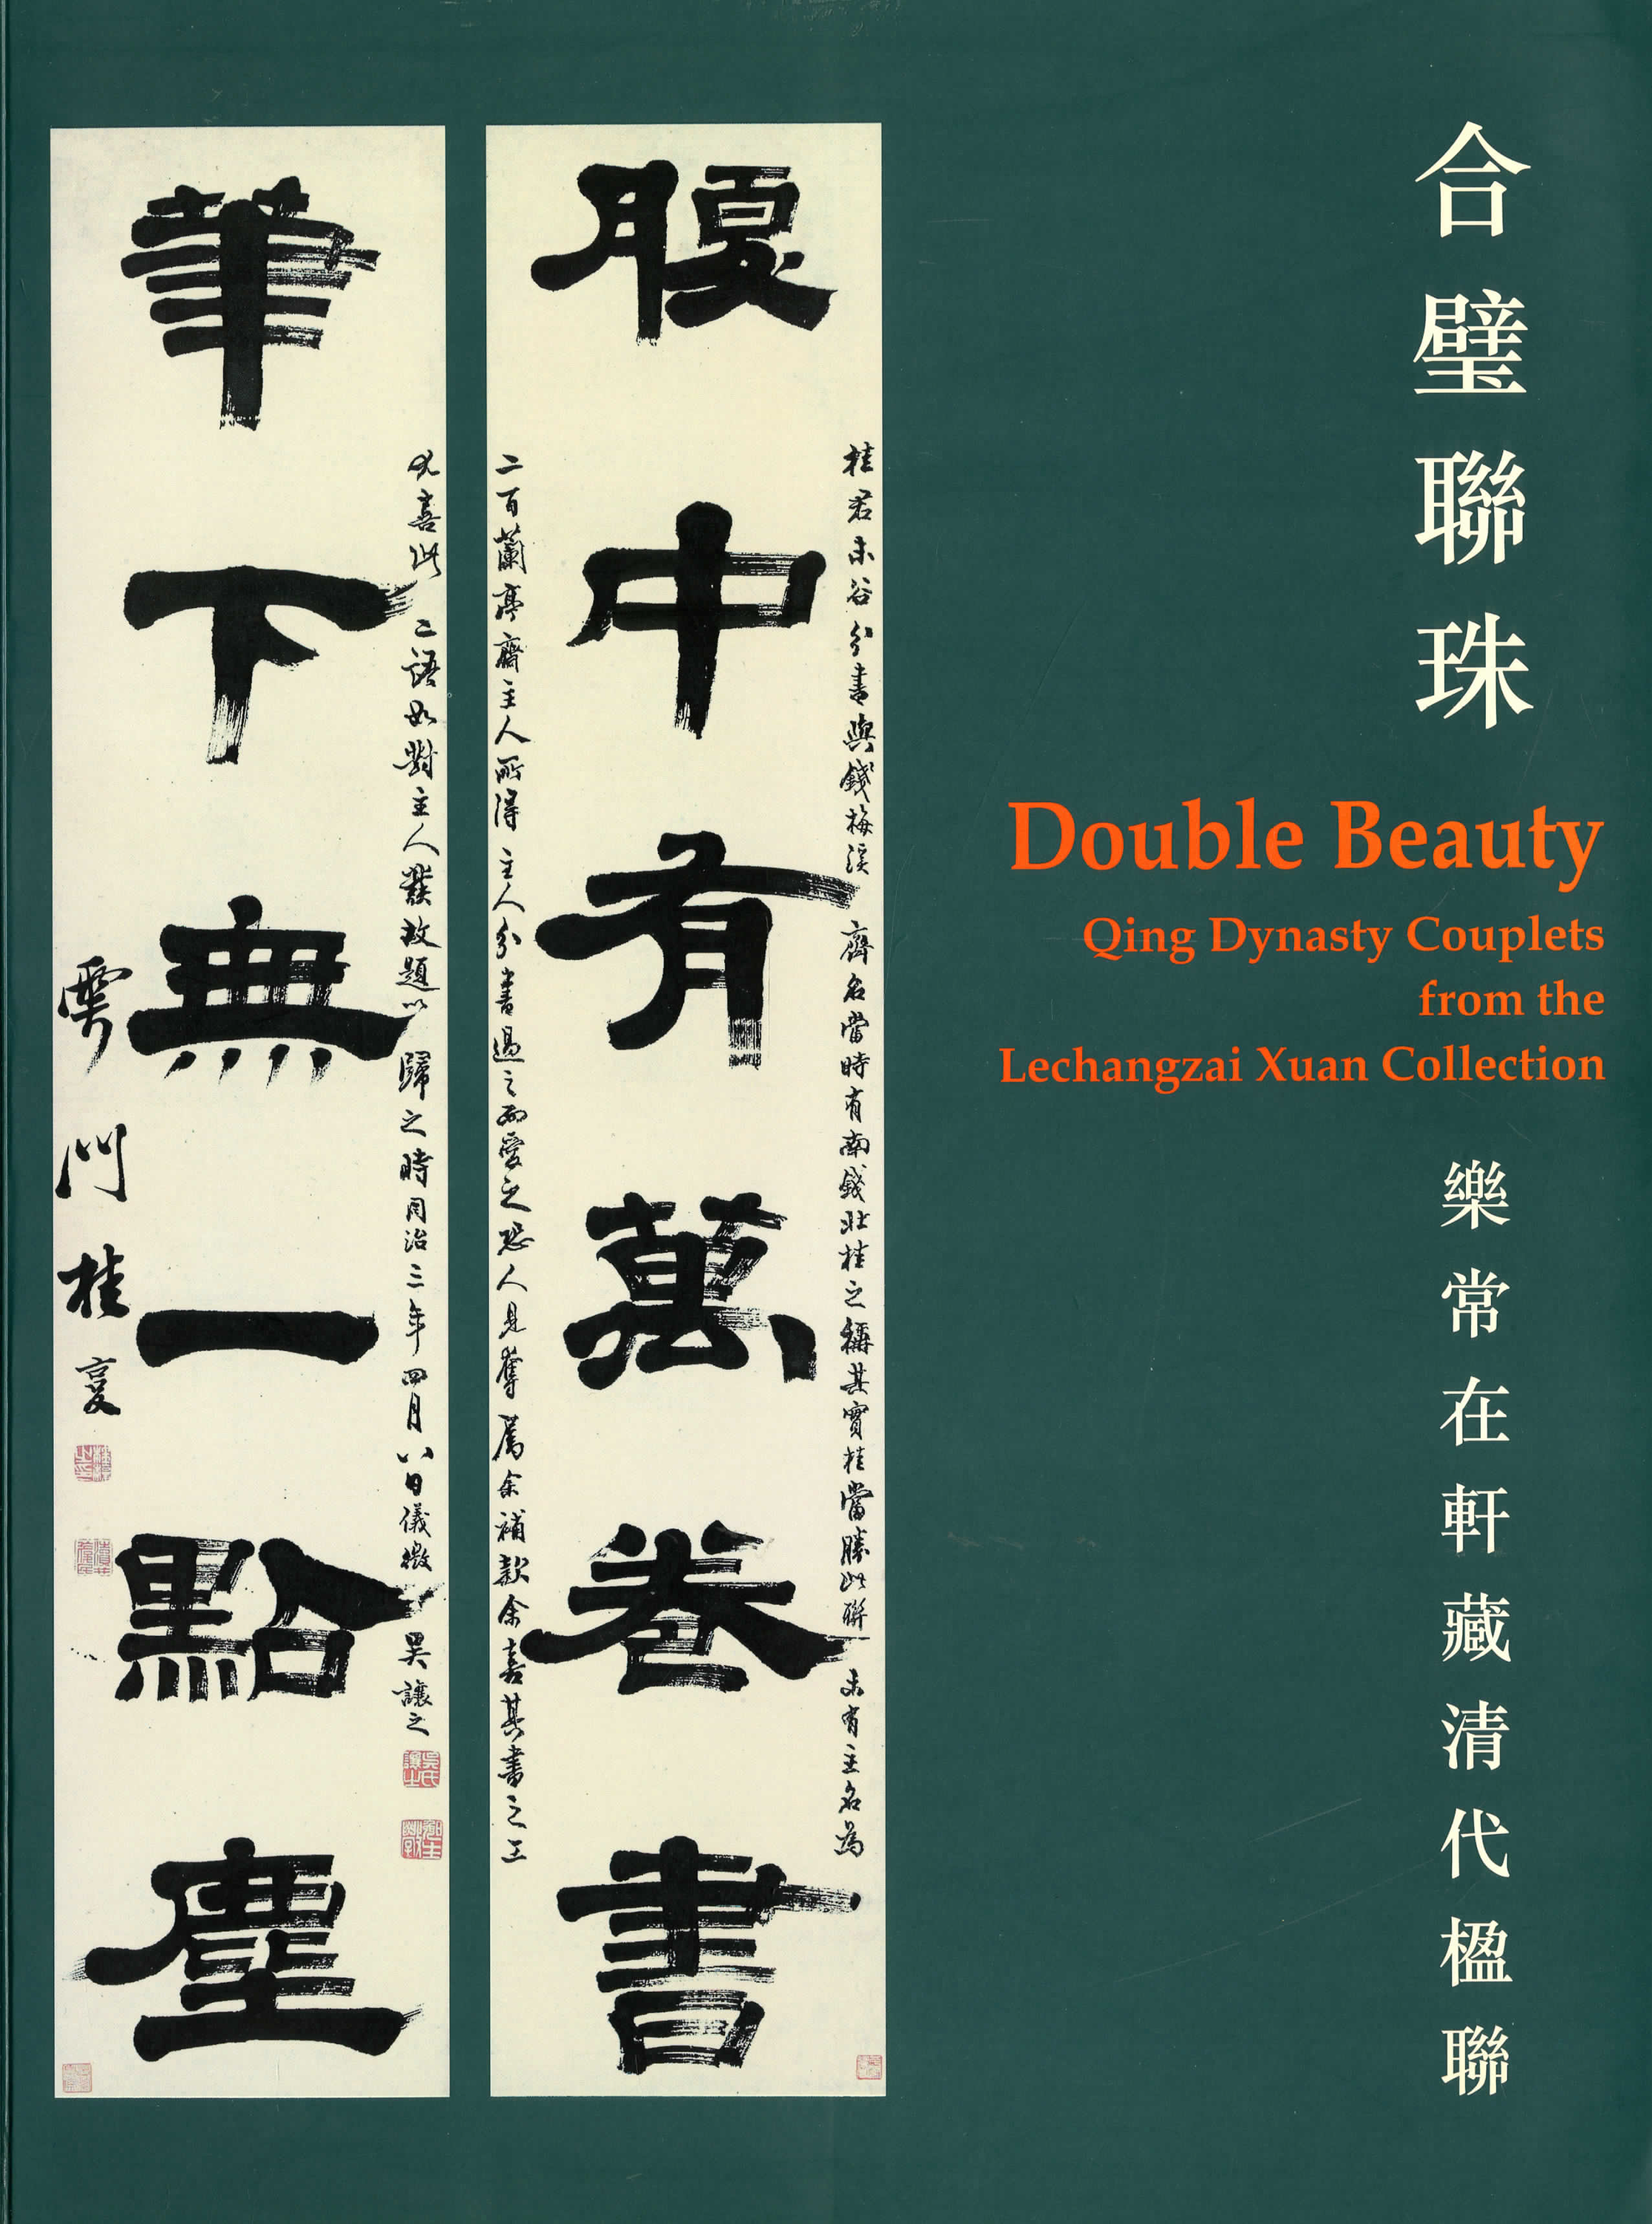 Peter C. Sturman, ed. Double Beauty: Qing Dynasty Couplets from the Lechangzai Xuan Collection. Hong Kong: The Chinese University Art Museum, 2003.